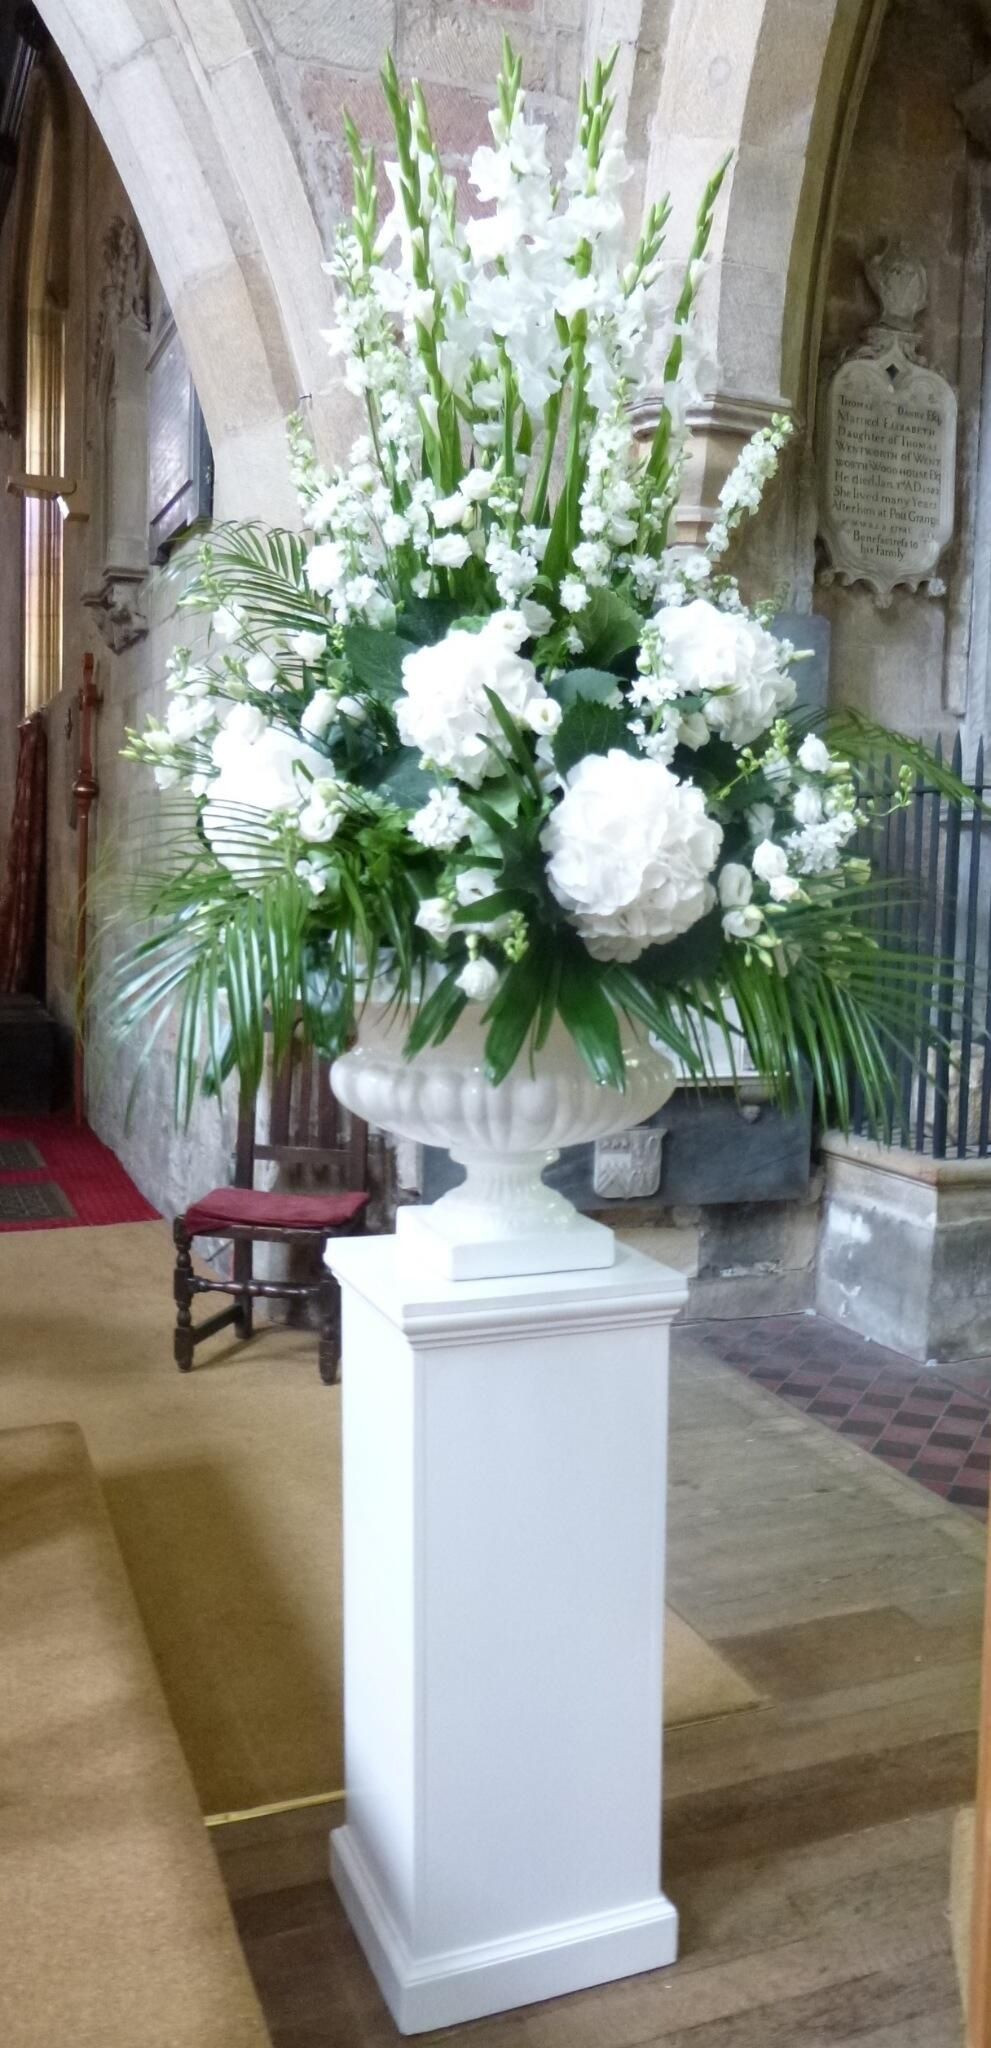 rent mercury glass vases of pedestal flower vase photos dsc7285h vases gold pedestal vase glass with pedestal flower vase stock just inside this vast church two magnificently traditional pedestals of pedestal flower